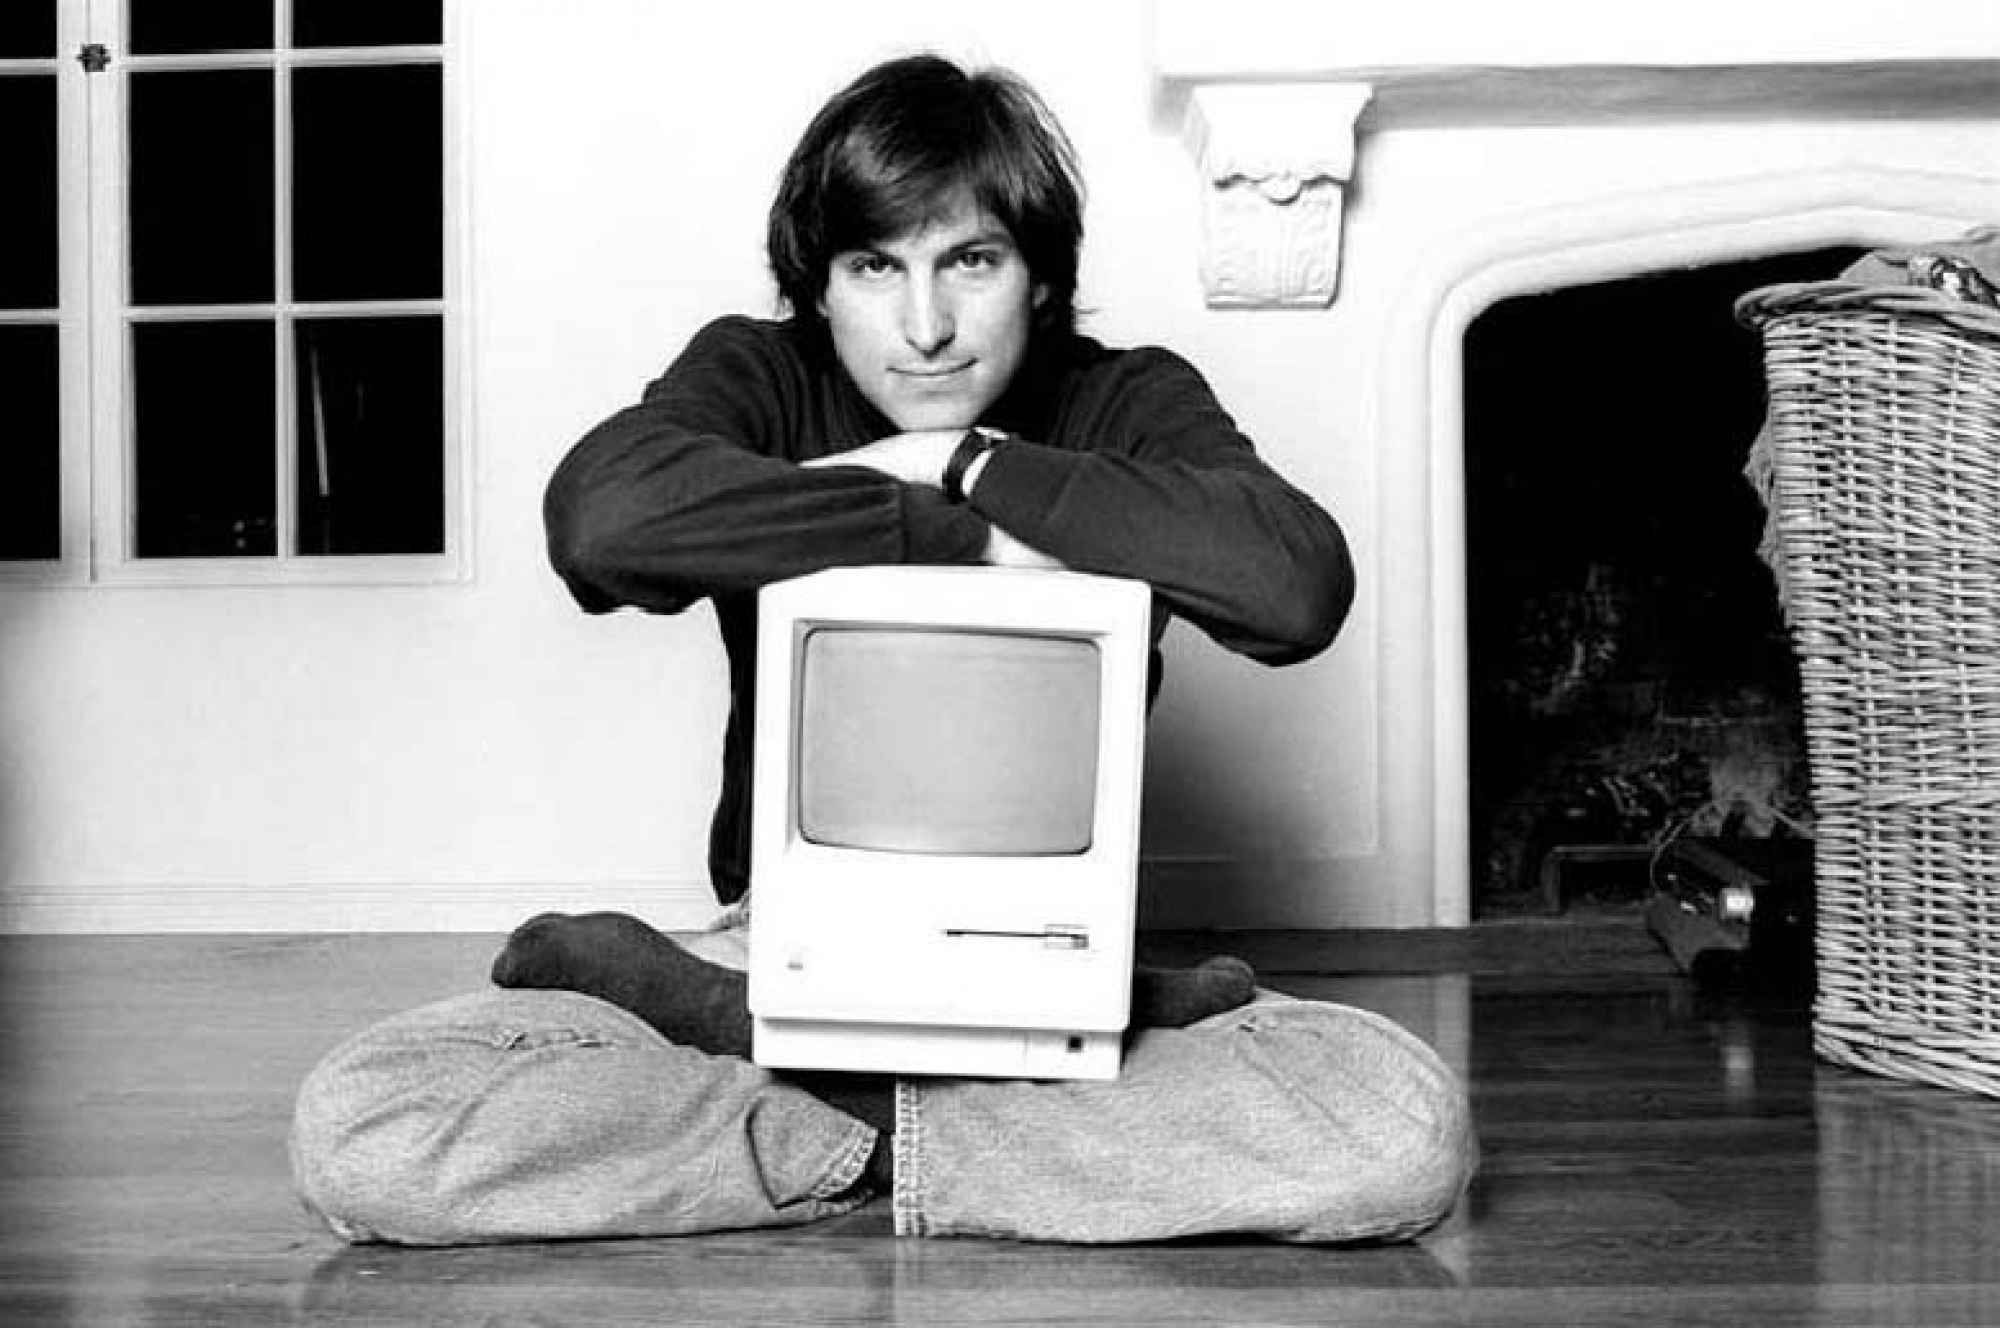 Young Steve Jobs